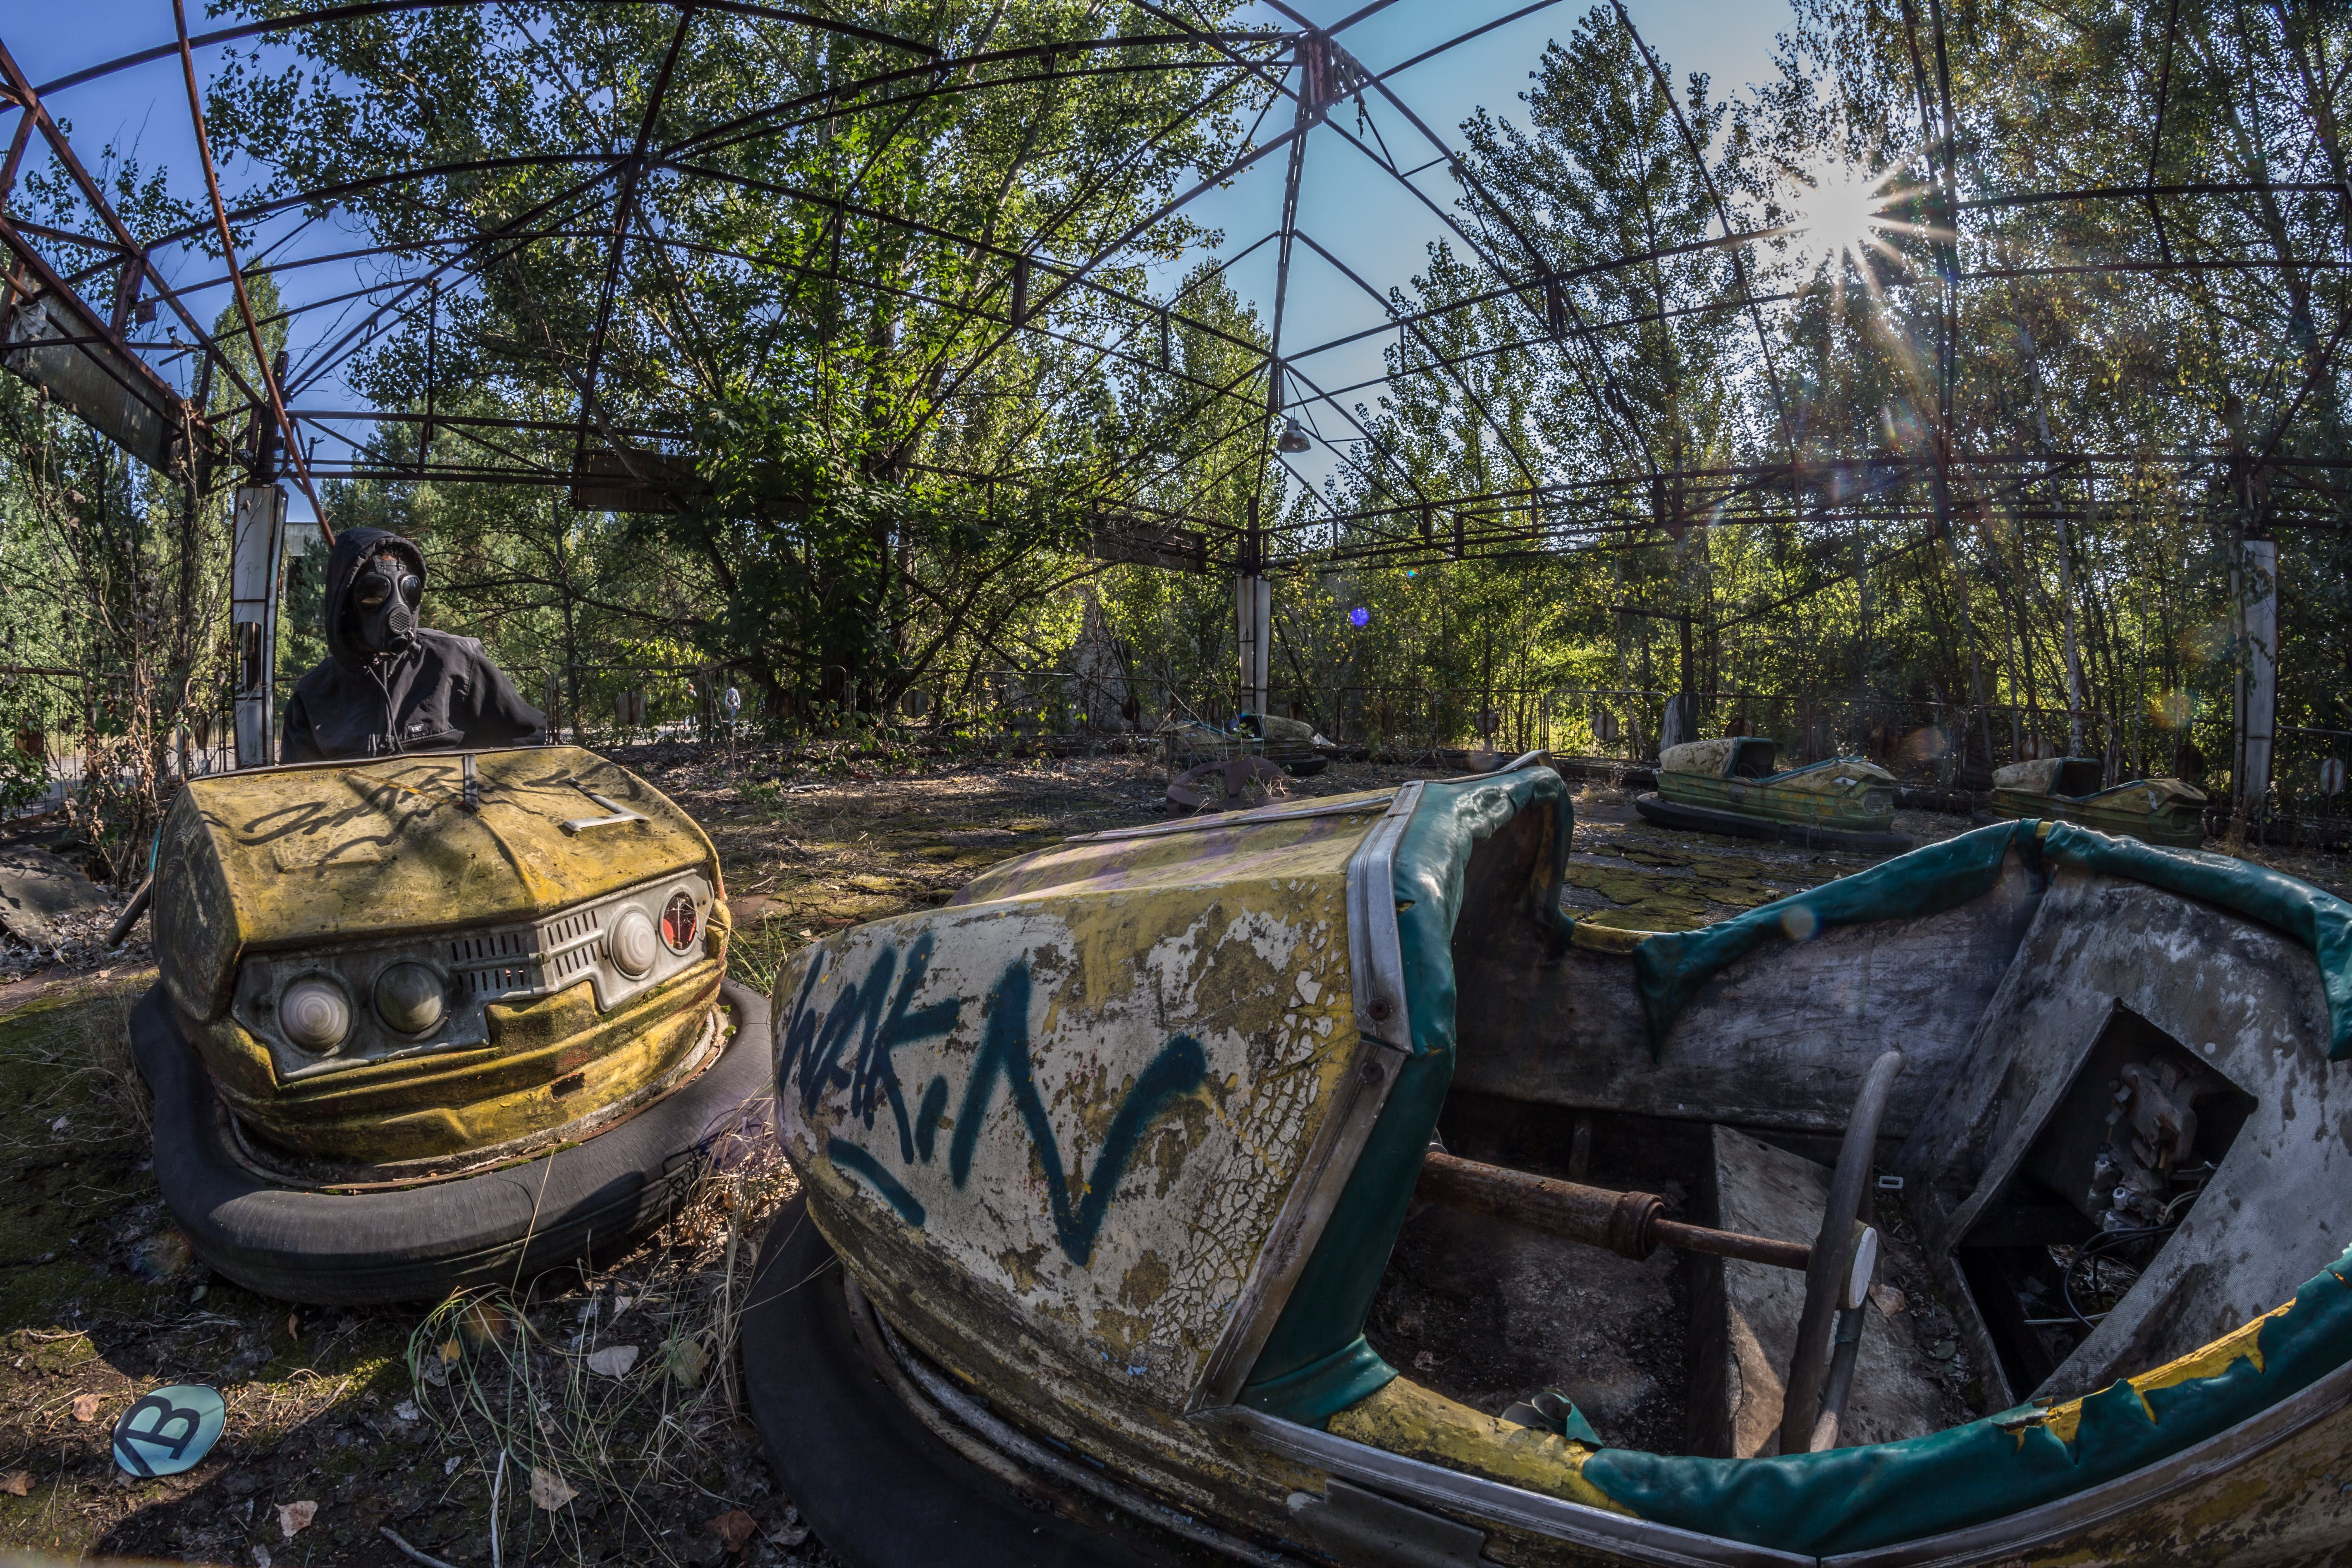 Two Wrecked White and Yellow Bump Cars Surrounded With Trees